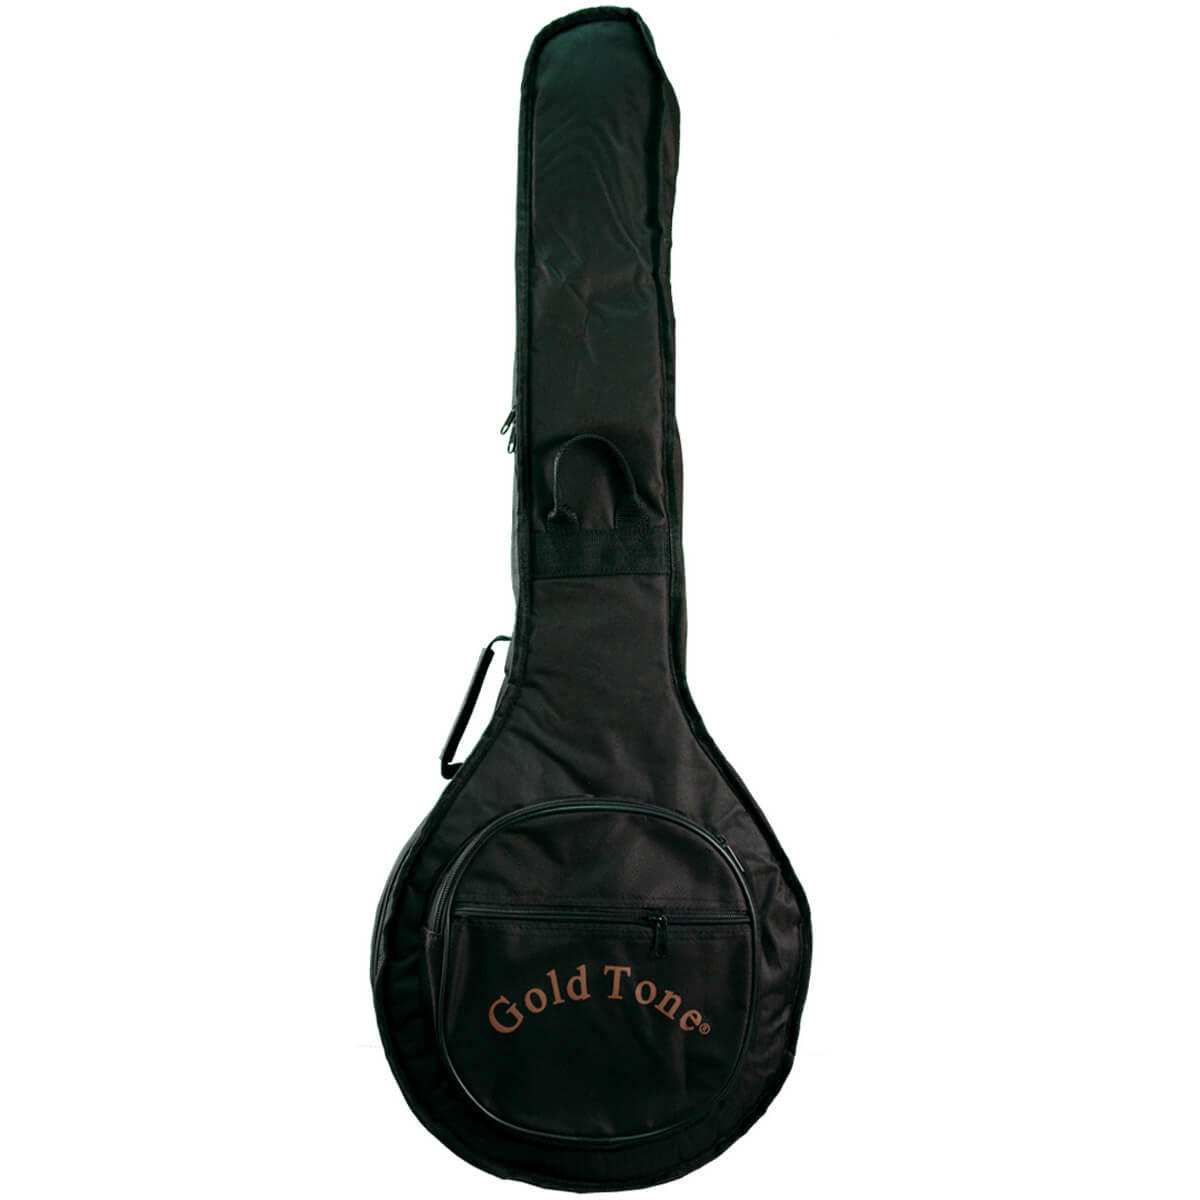 Openback Banjo (Light) Bag (LDBO)